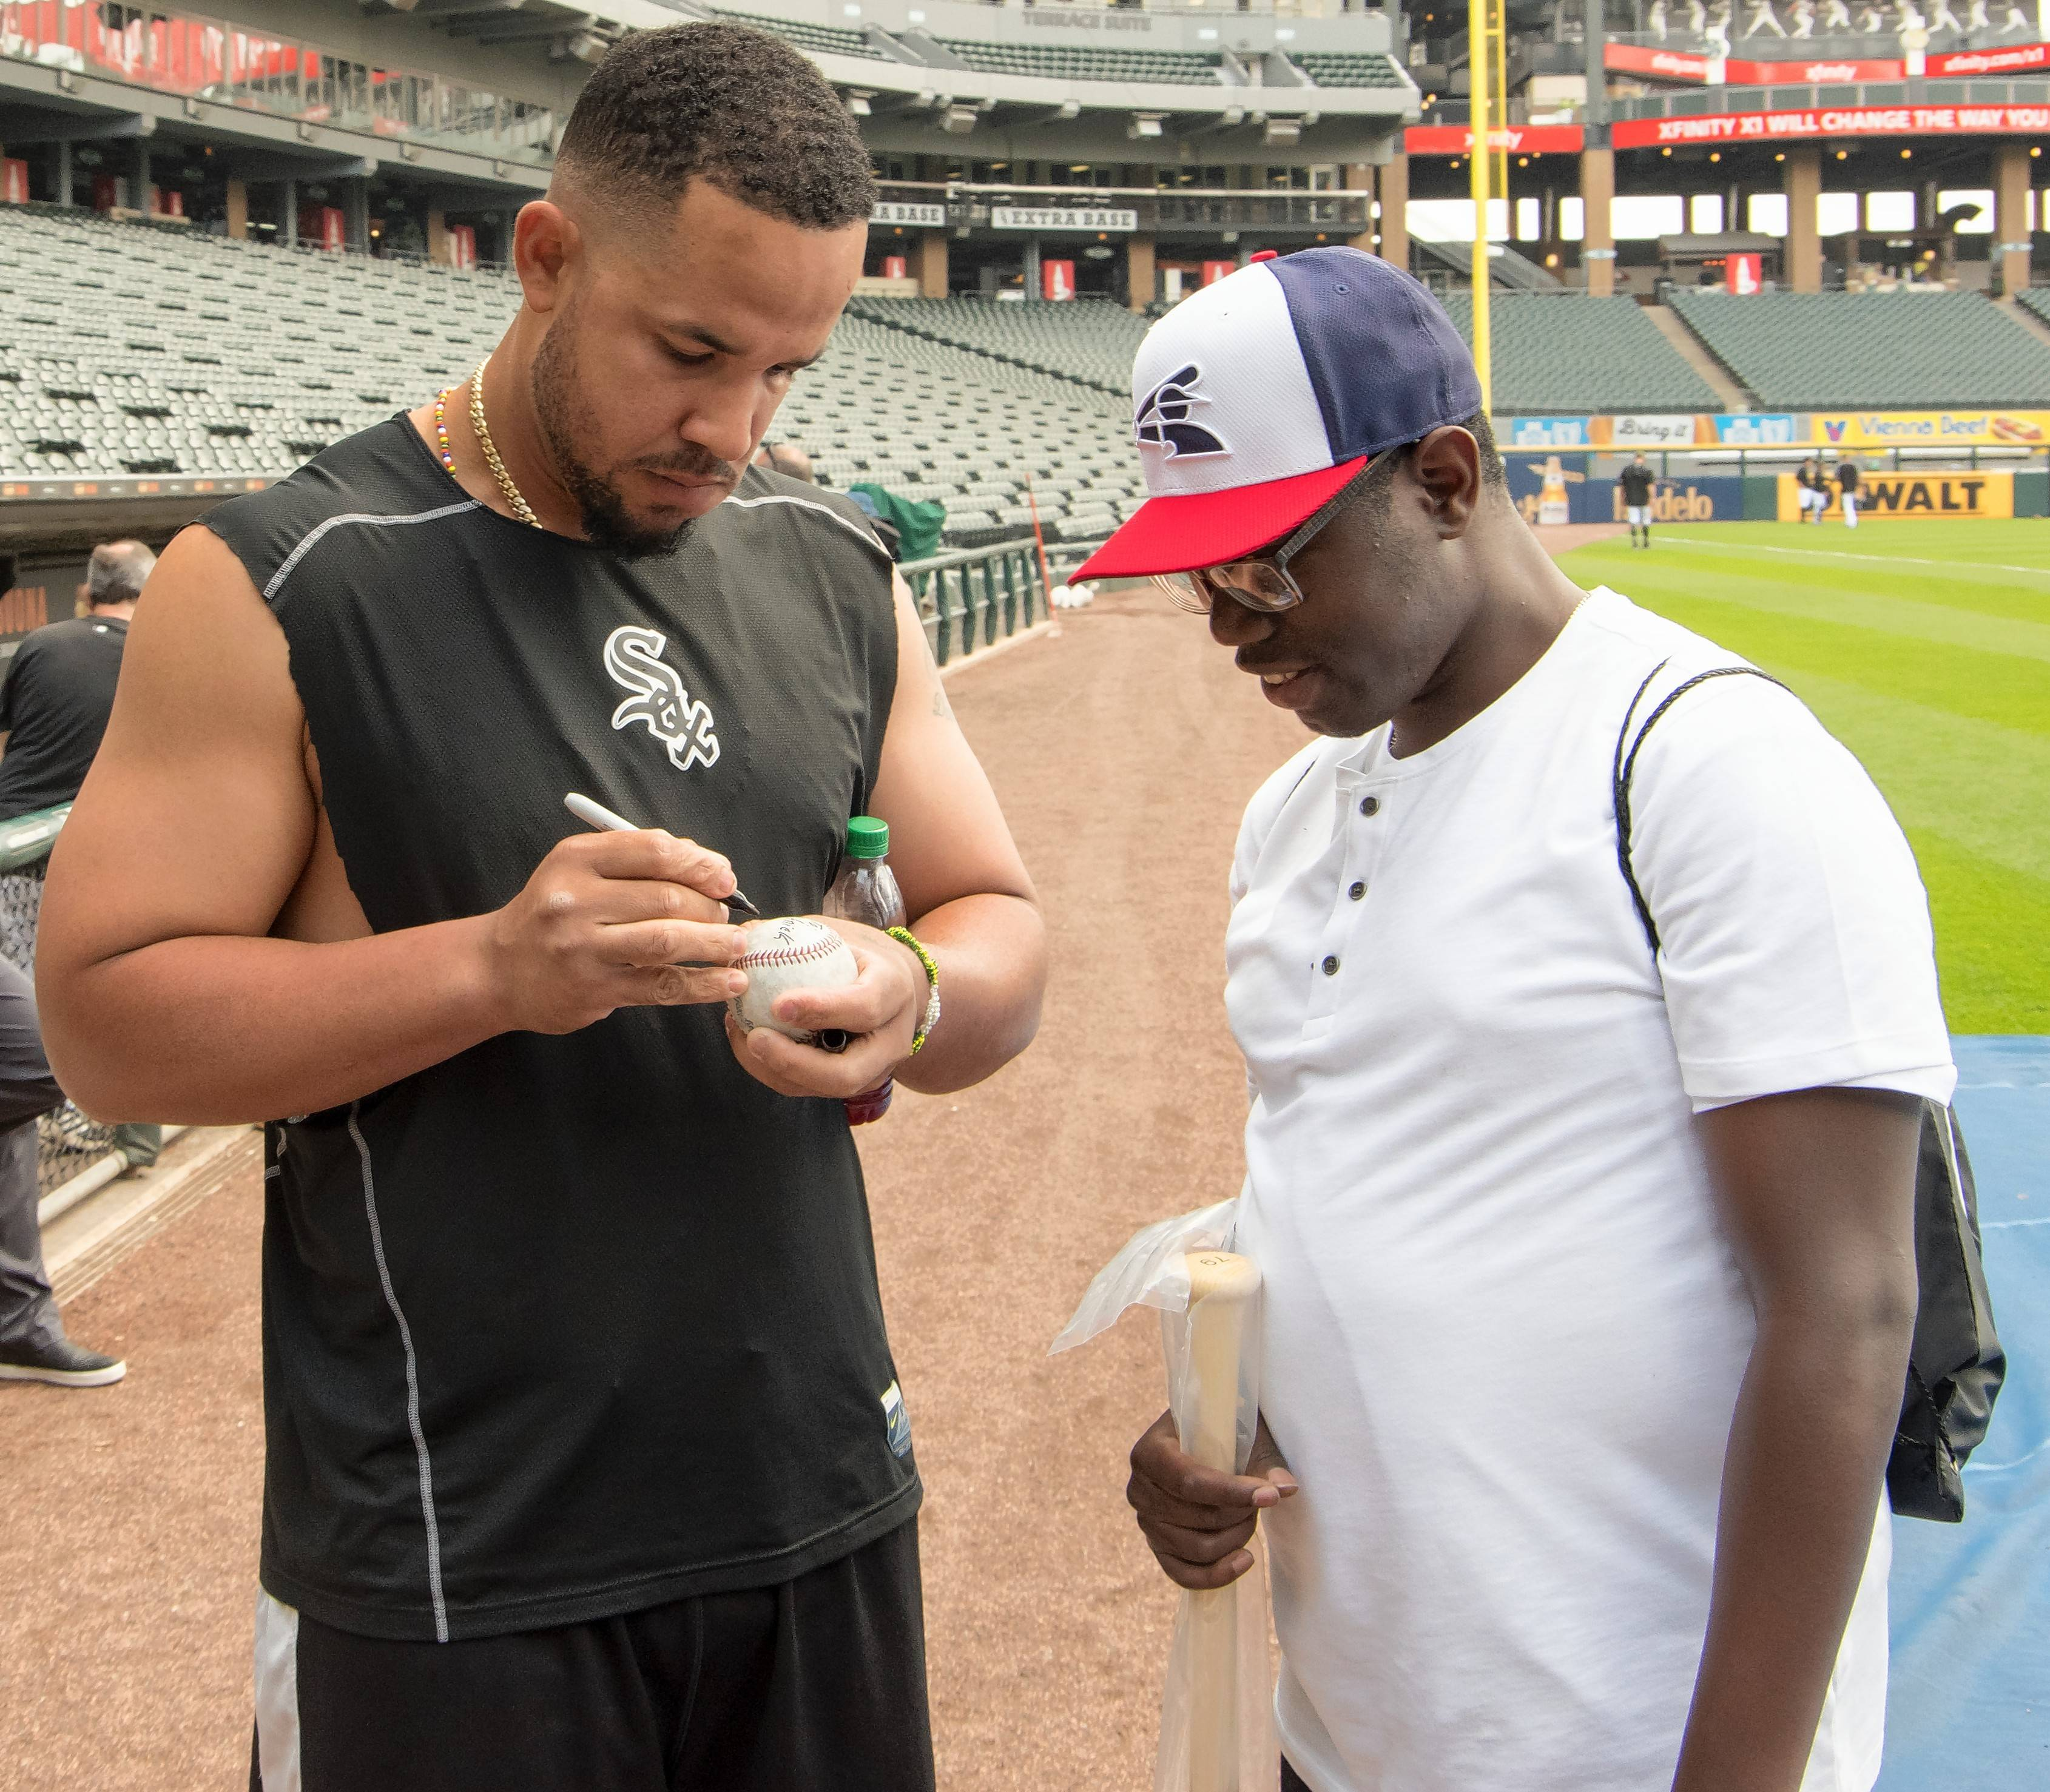 White Sox first baseman Jose Abreu, left, signs a ball, bat and gloves for Patrick Brock of Schaumburg. Brock, who has special needs and was adopted by a Schaumburg family as a foster child, grew up as a die-hard White Sox fan.